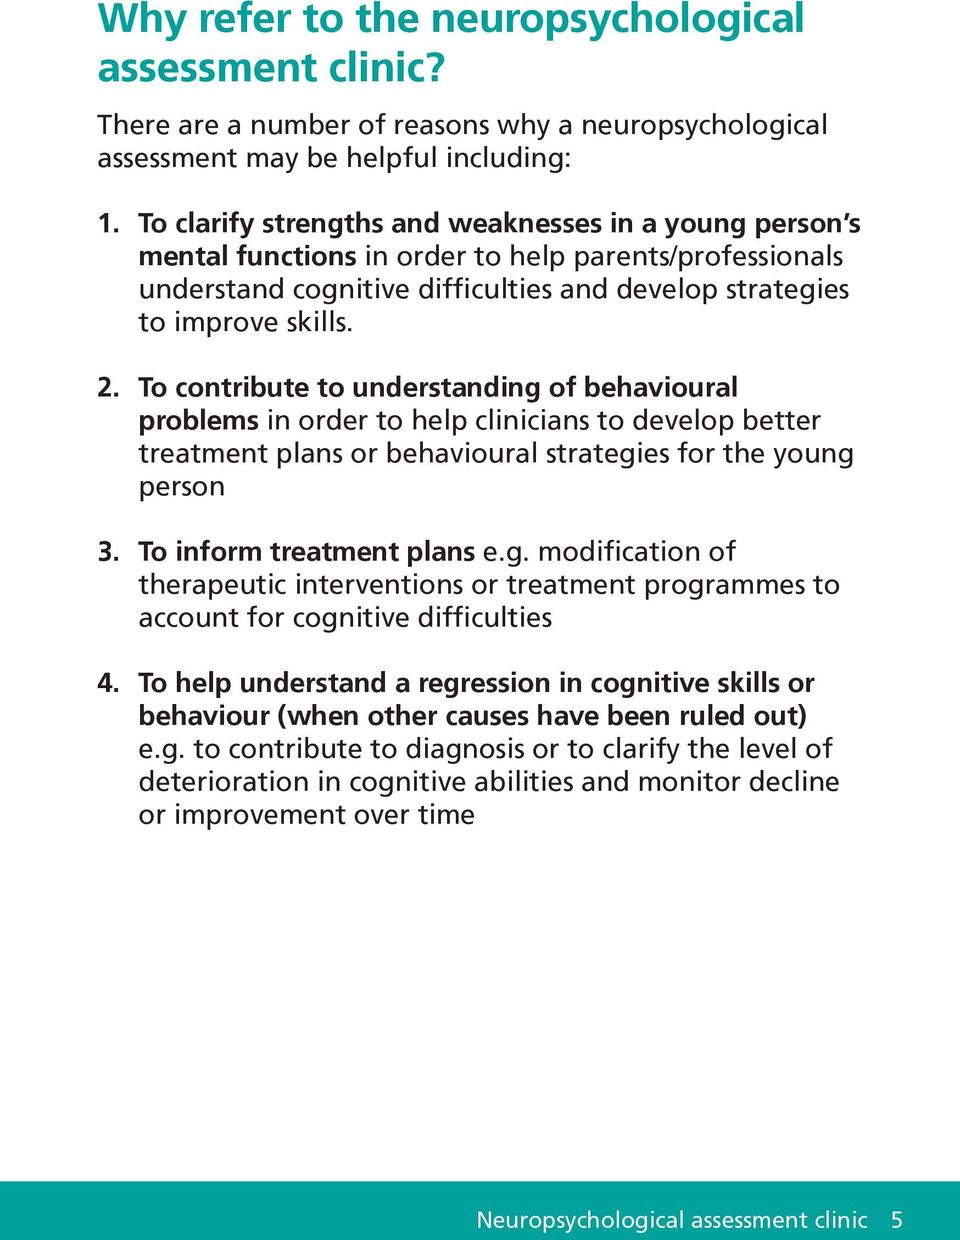 To contribute to understanding of behavioural problems in order to help clinicians to develop better treatment plans or behavioural strategies for the young person 3. To inform treatment plans e.g. modification of therapeutic interventions or treatment programmes to account for cognitive difficulties 4.